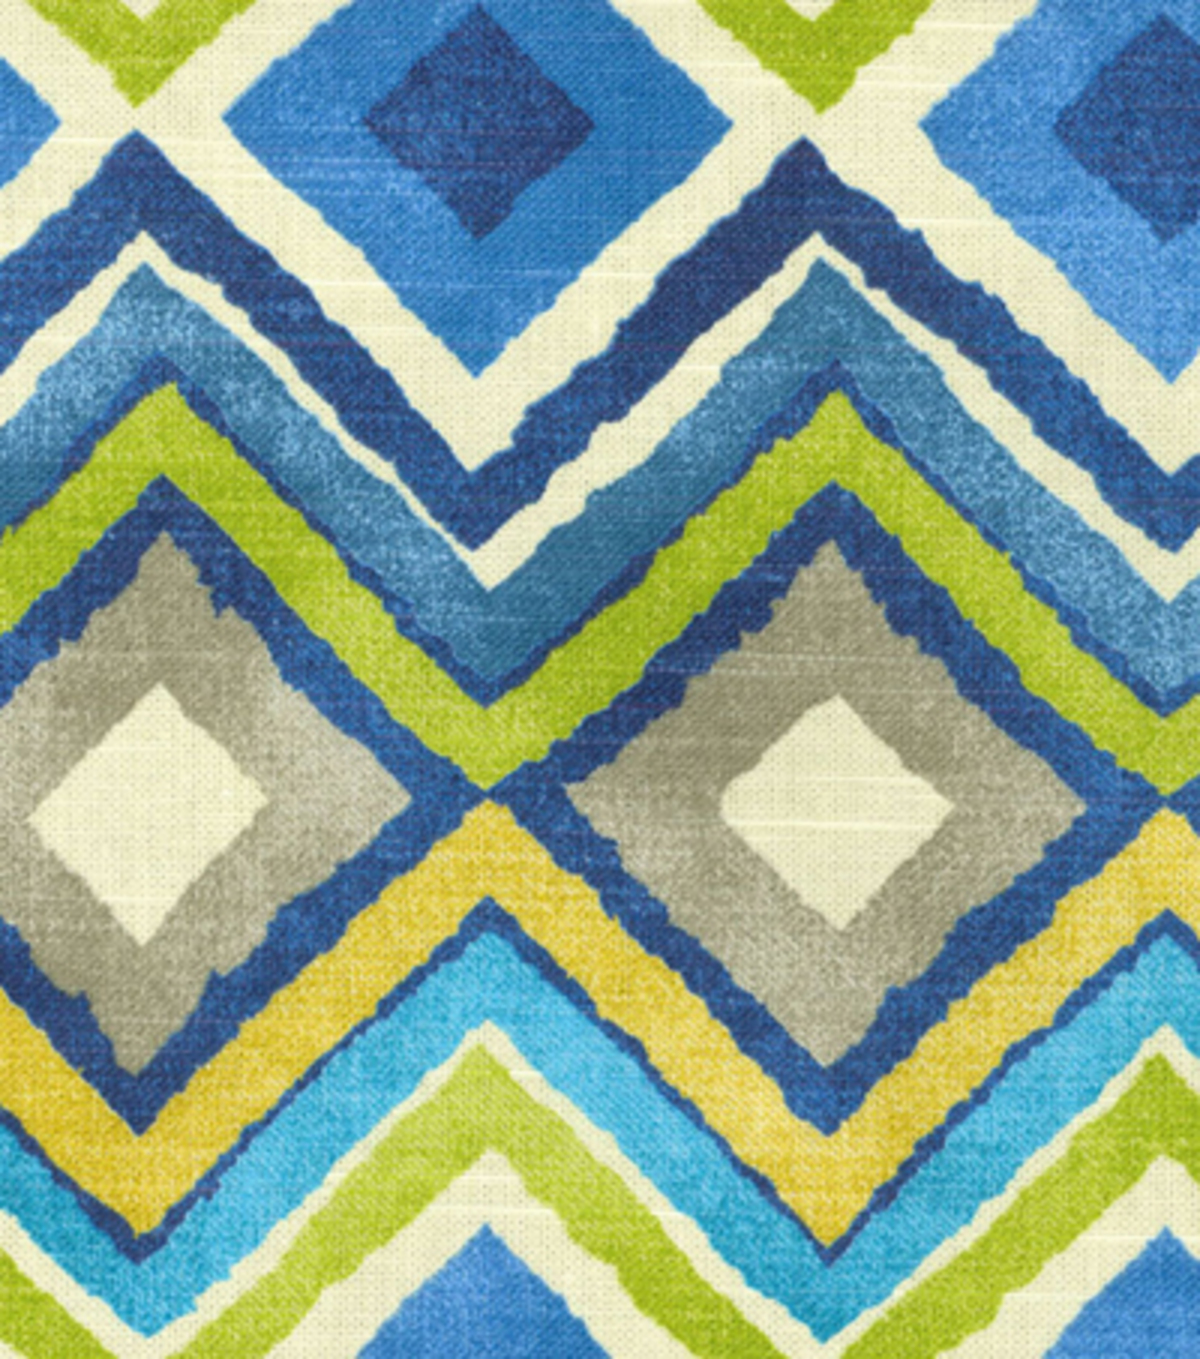 HGTV Home Upholstery Fabric-Like A Diamond Azure